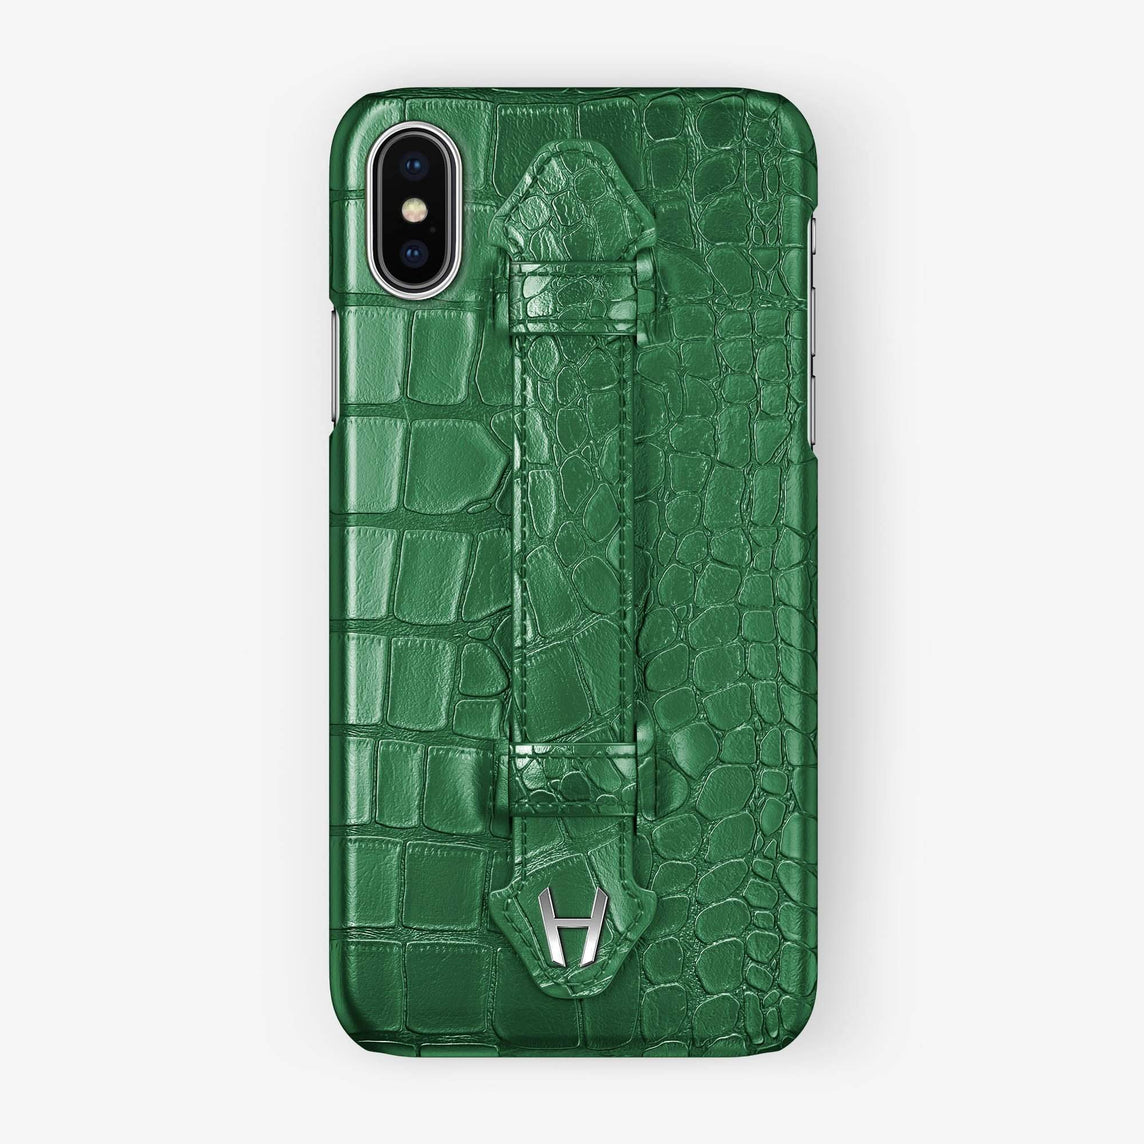 Green Alligator iPhone Finger Case for iPhone XS Max finishing stainless steel - Hadoro Luxury Cases